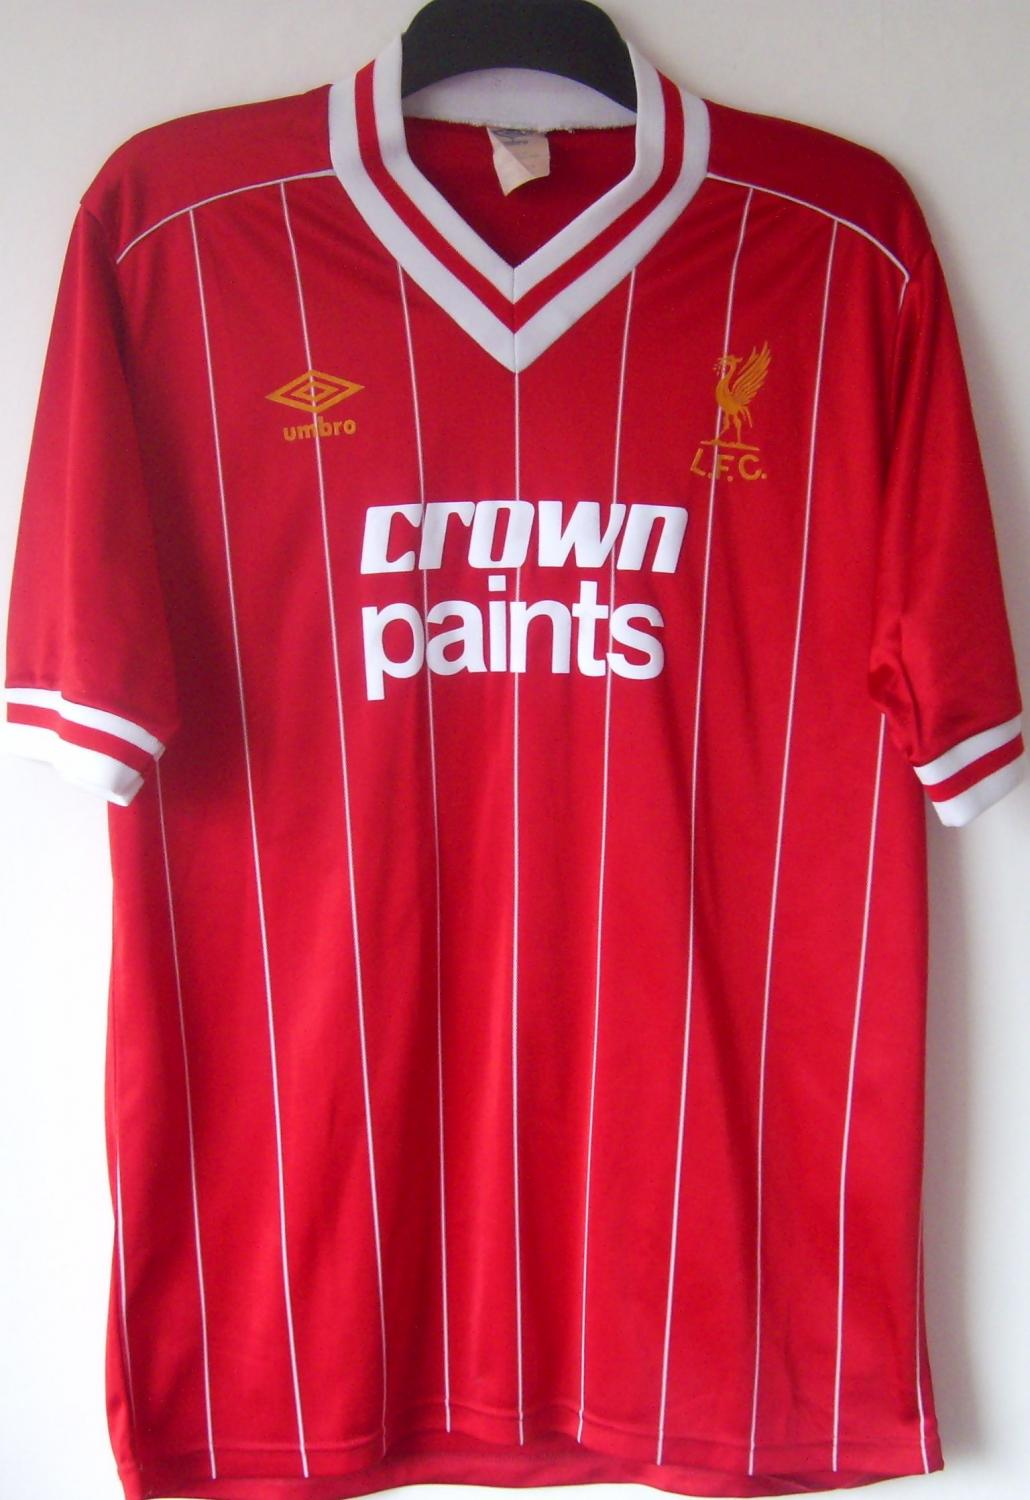 new arrivals 90f3d 7ac2c Liverpool Home fotbollströja 1982 - 1983. Sponsored by Crown ...